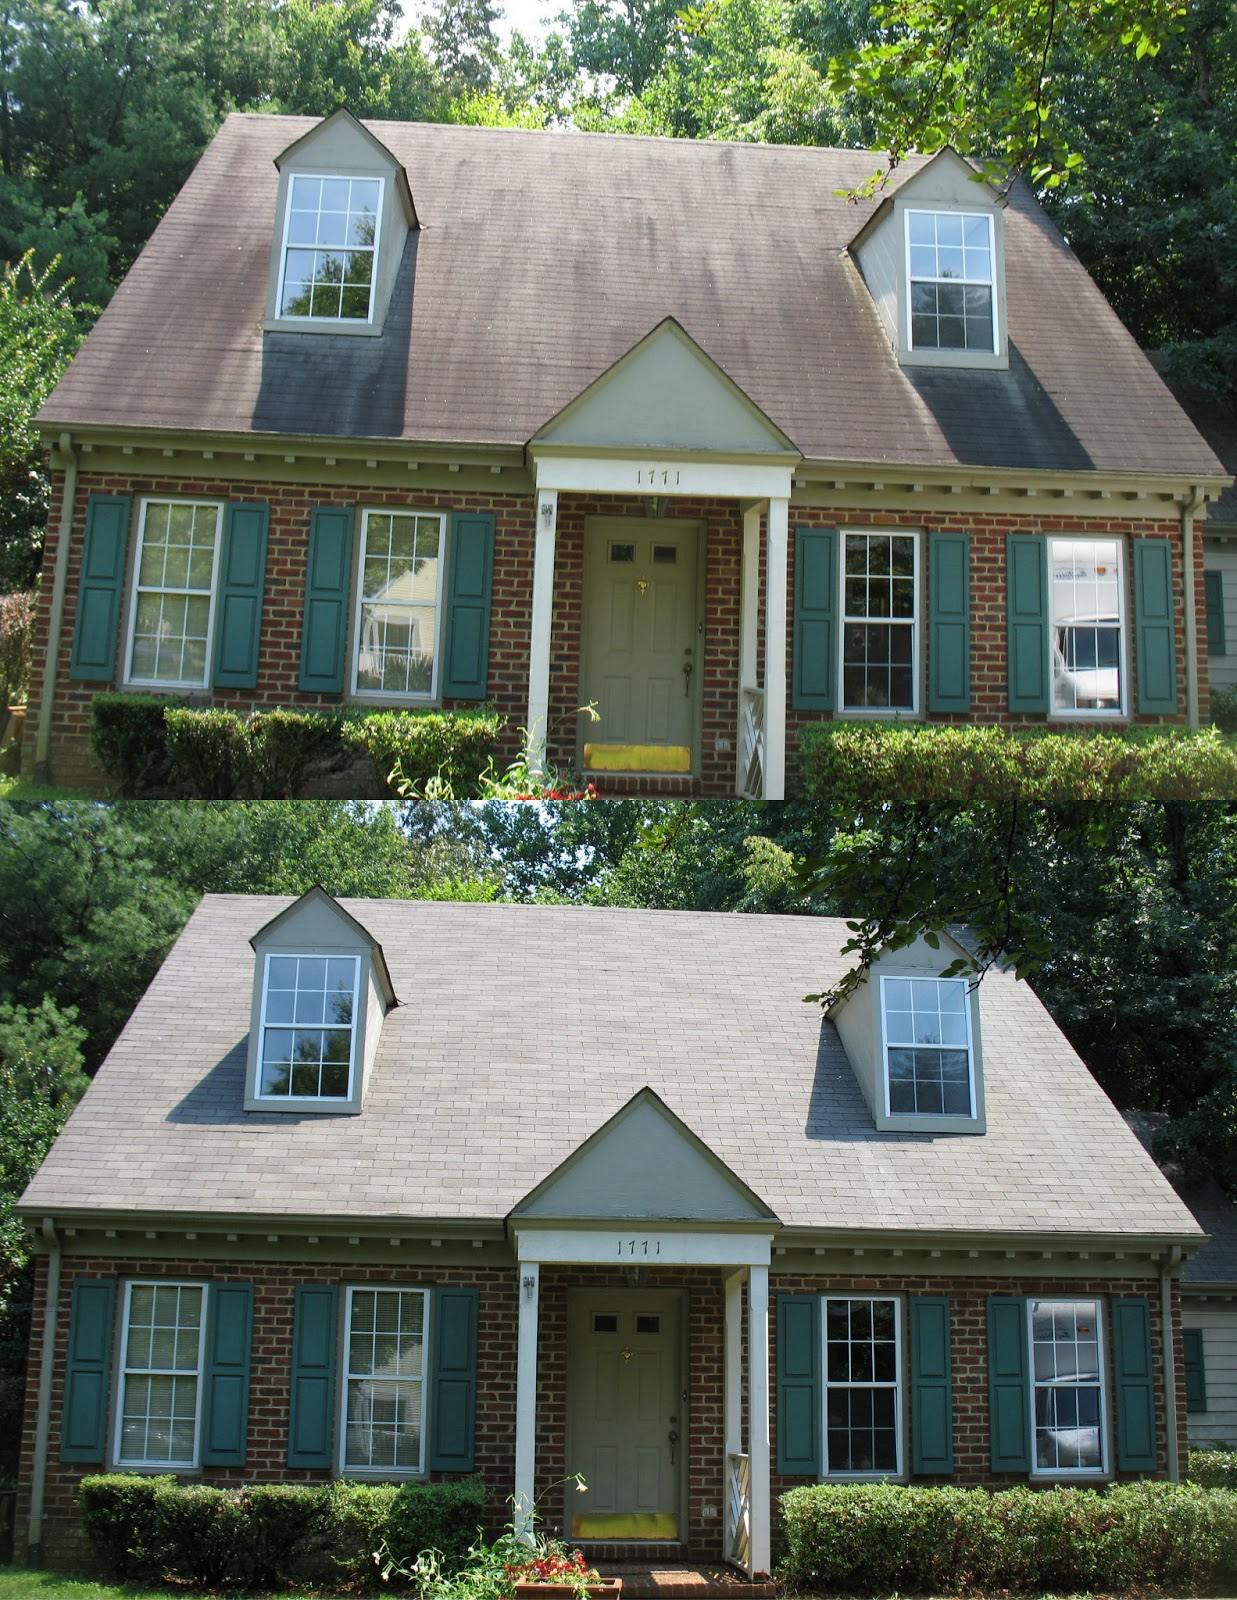 Blue Ridge Exterior Cleaning How To Make Your Roof Last With Proper Cleaning